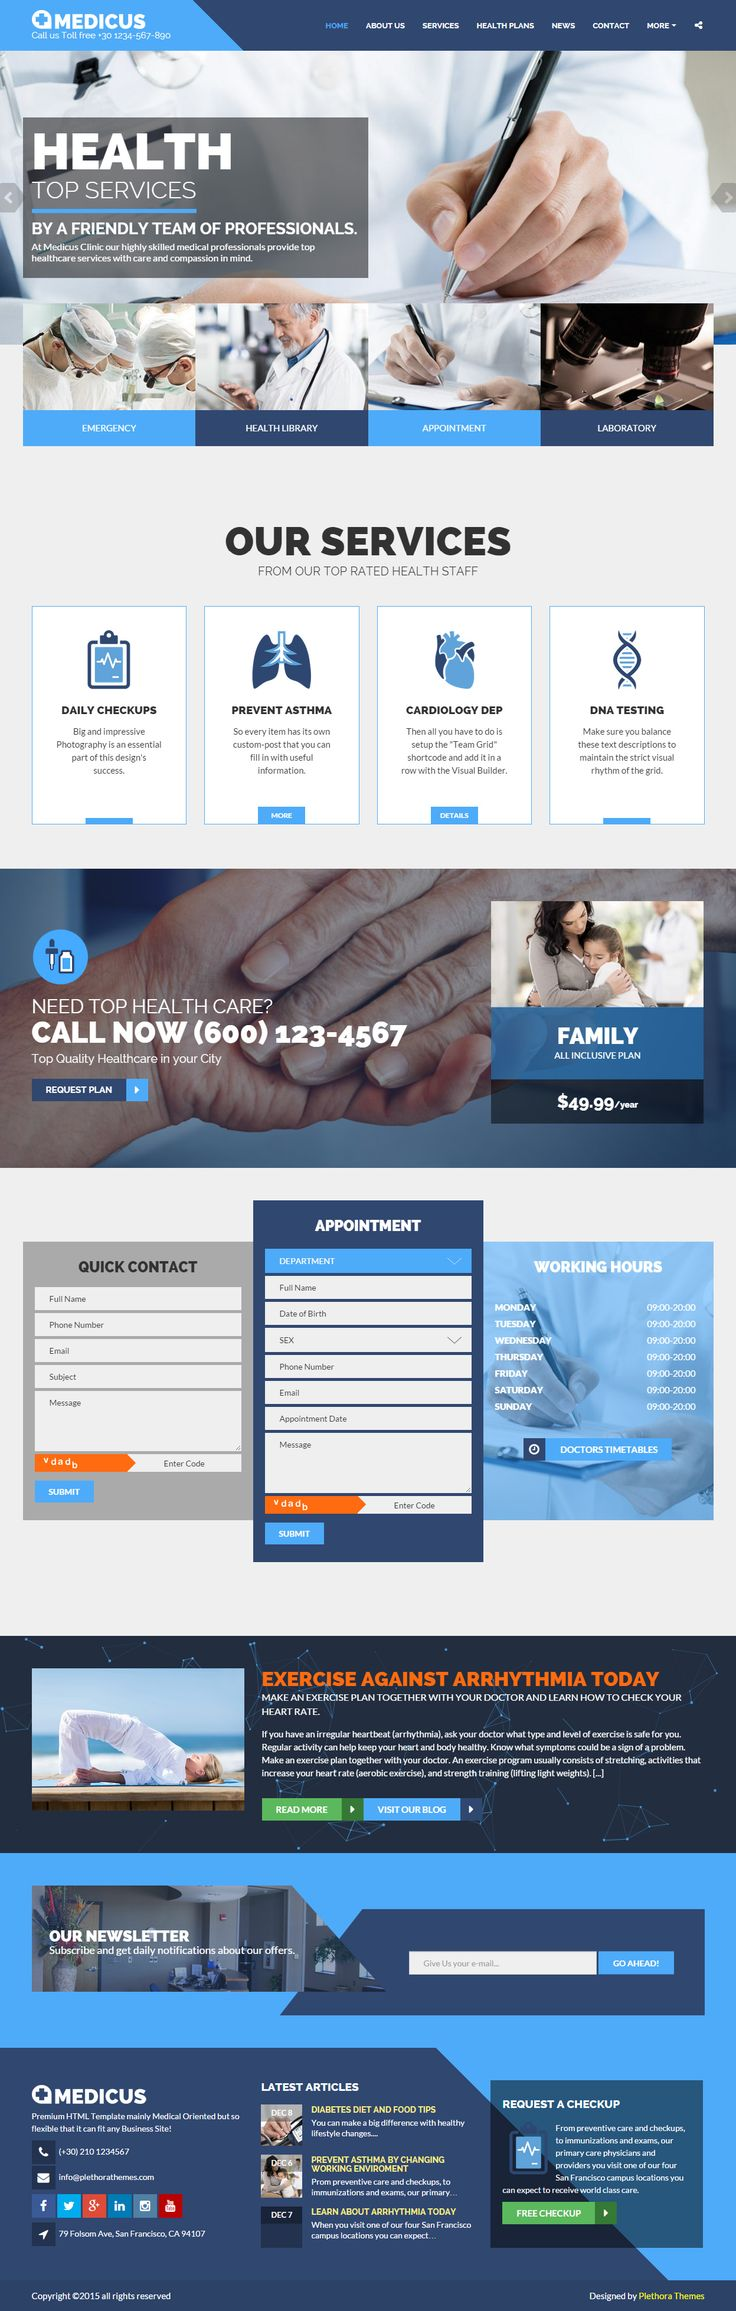 Medicus is Premium Responsive #Medical #HTML5 Template. #Retina Ready. Bootstrap 3 Framework. Parallax Scrolling. Google Map. Test free demo at: http://www.responsivemiracle.com/cms/medicus-premium-responsive-medical-business-multipurpose-html5-template/